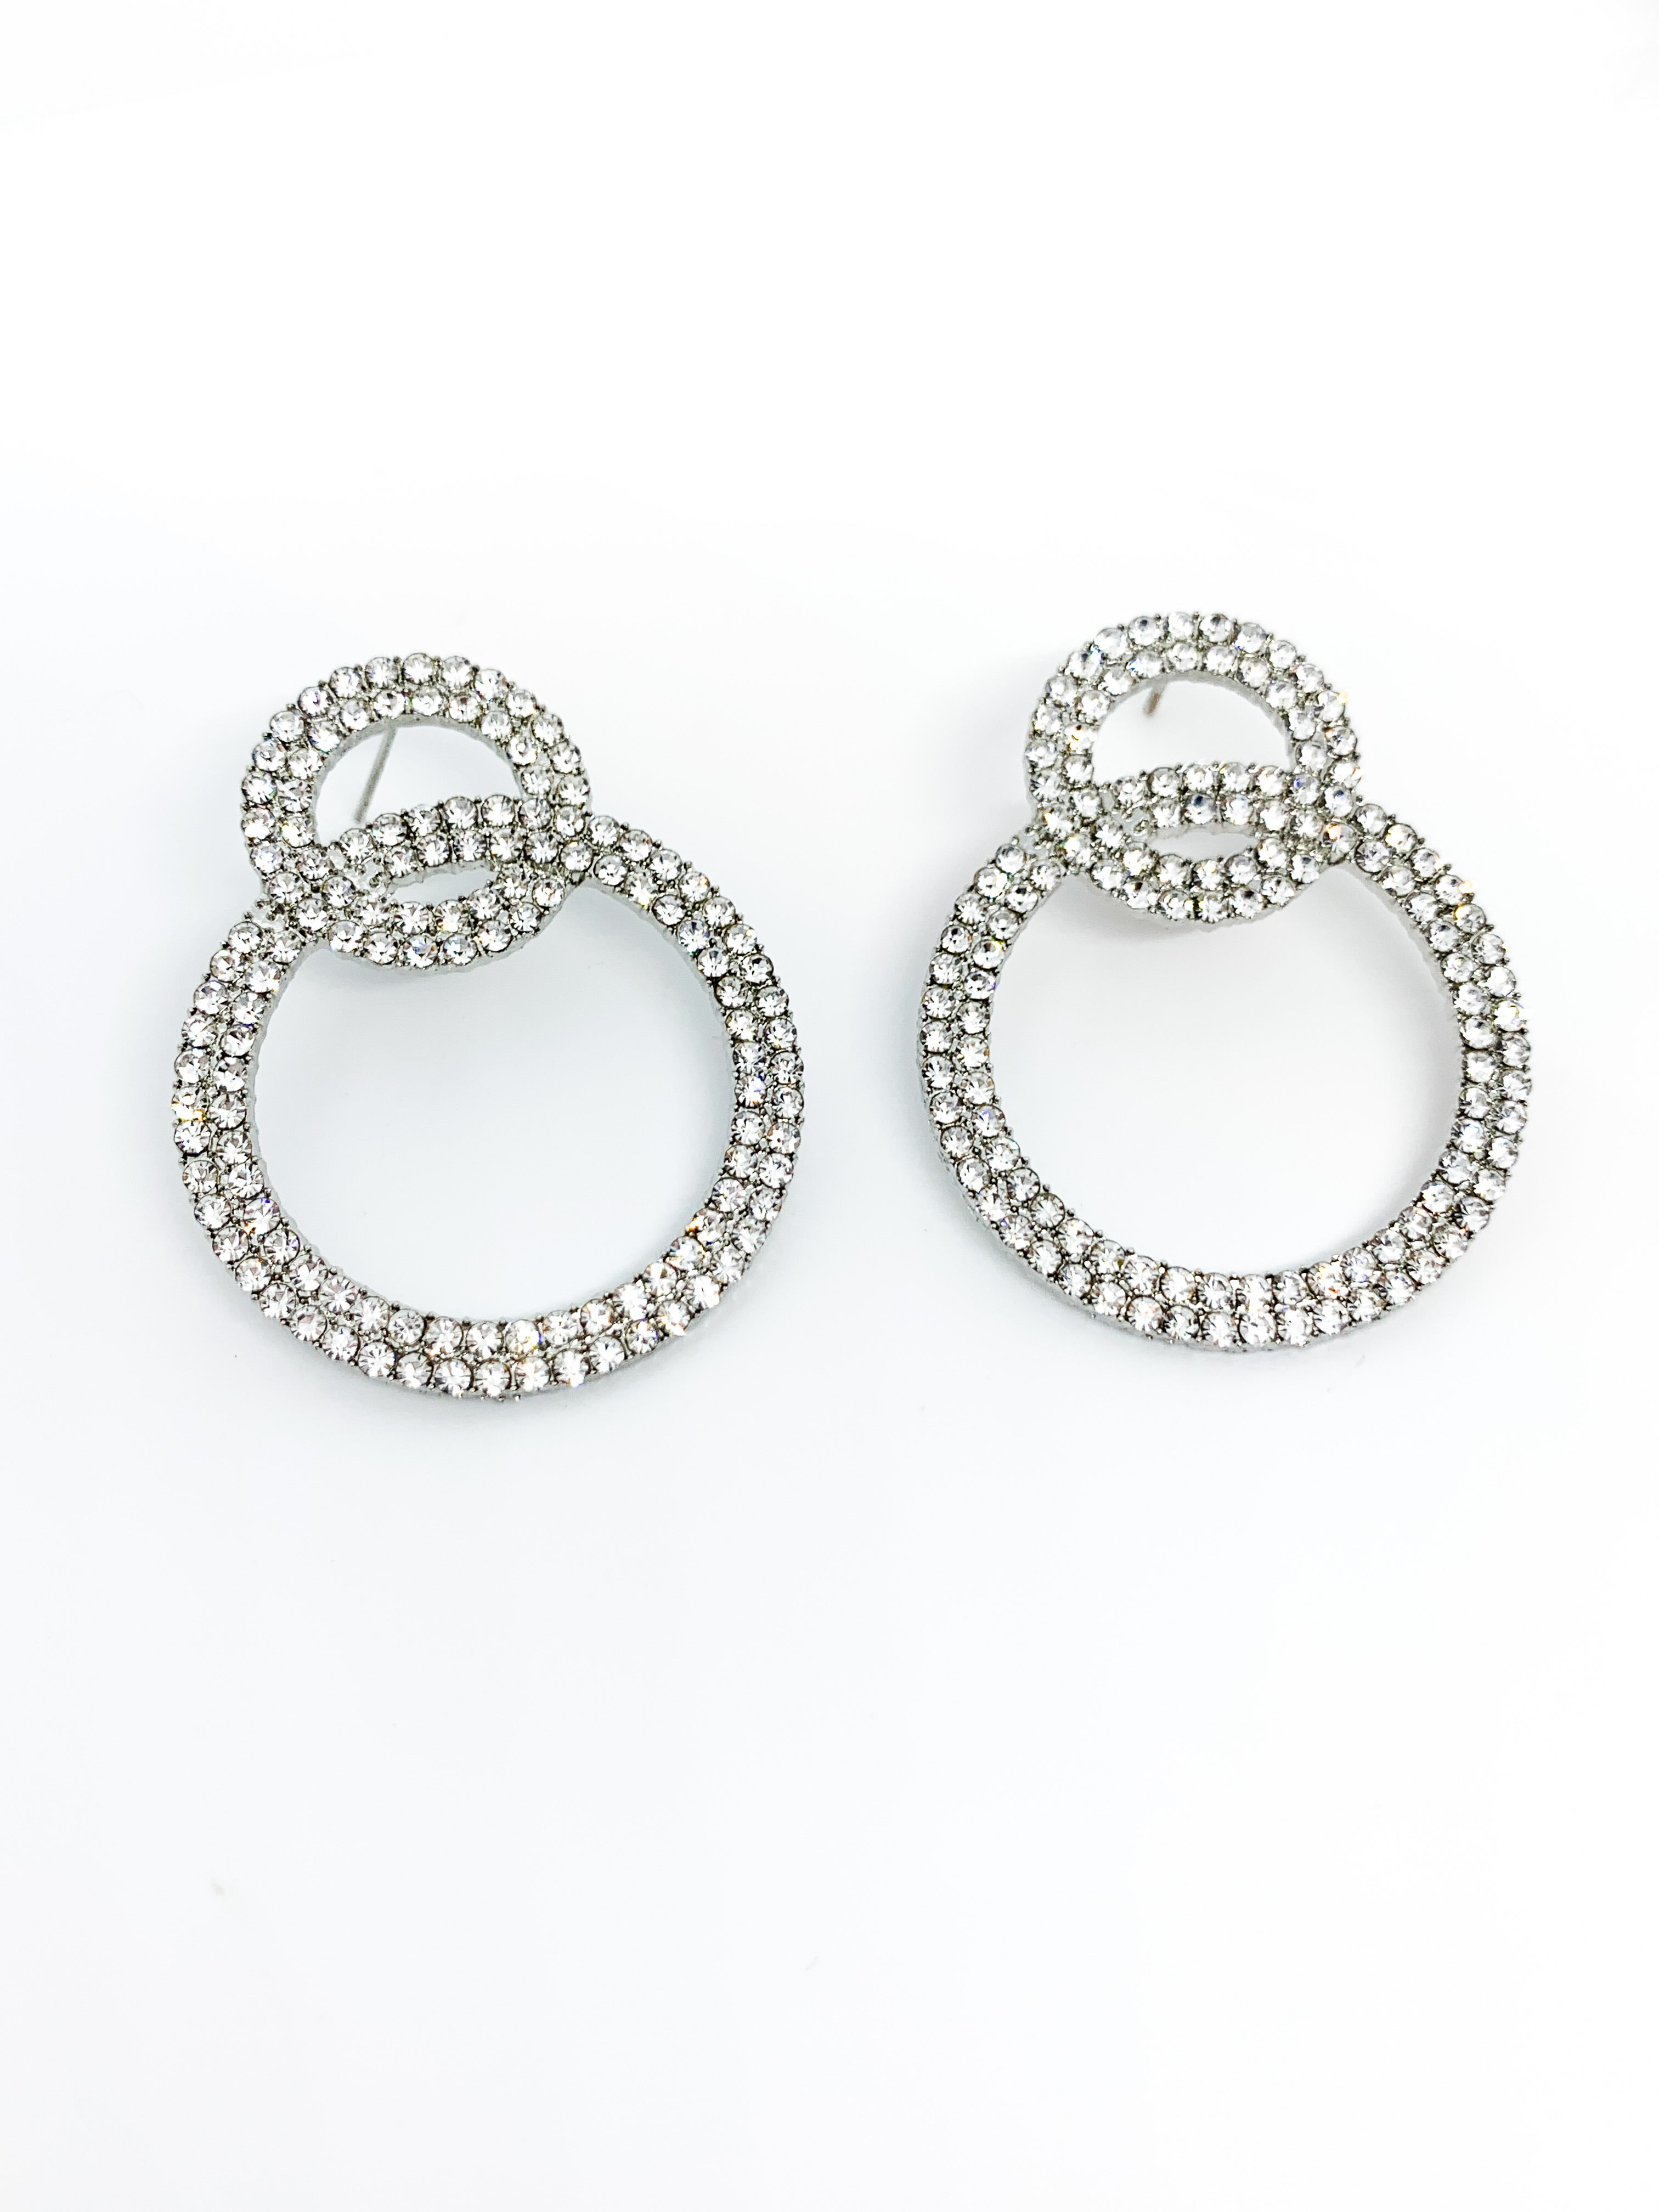 SILVER DIAMANTÉ DROP EARRINGS - Plush Boutique